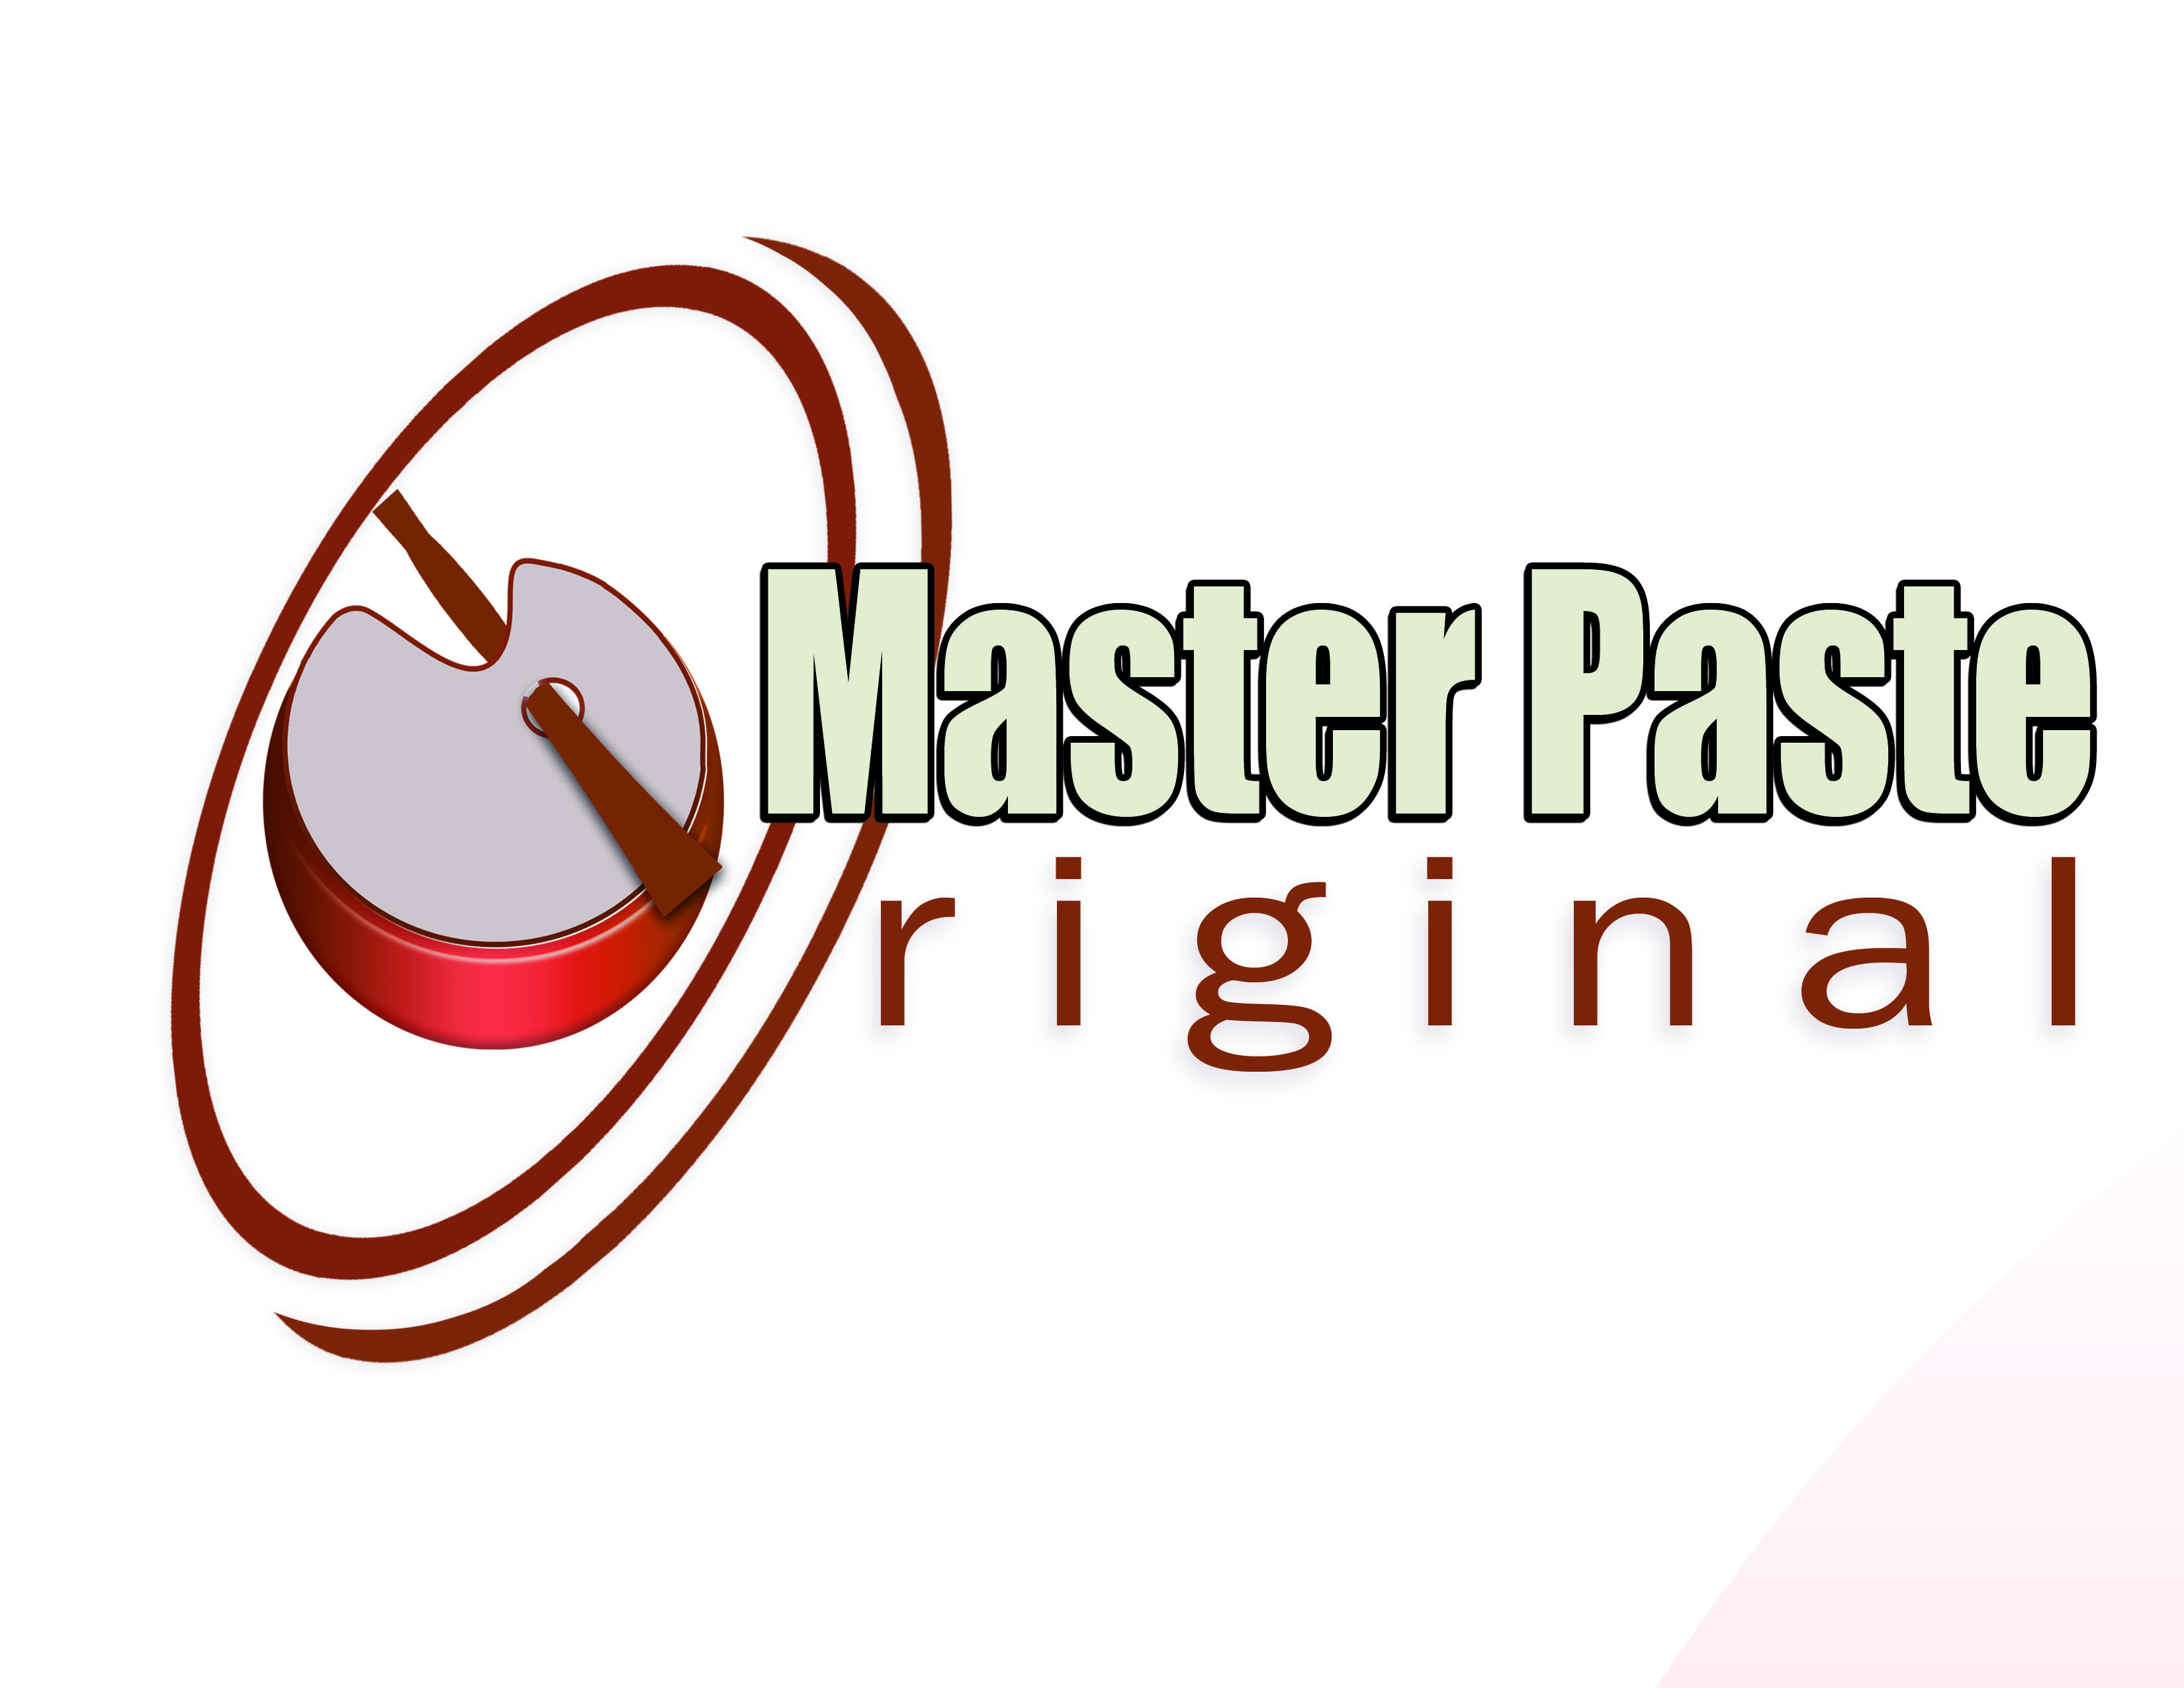 Logo Design by Alan Esclamado - Entry No. 43 in the Logo Design Contest Unique Logo Design Wanted for Master Paste Original™.